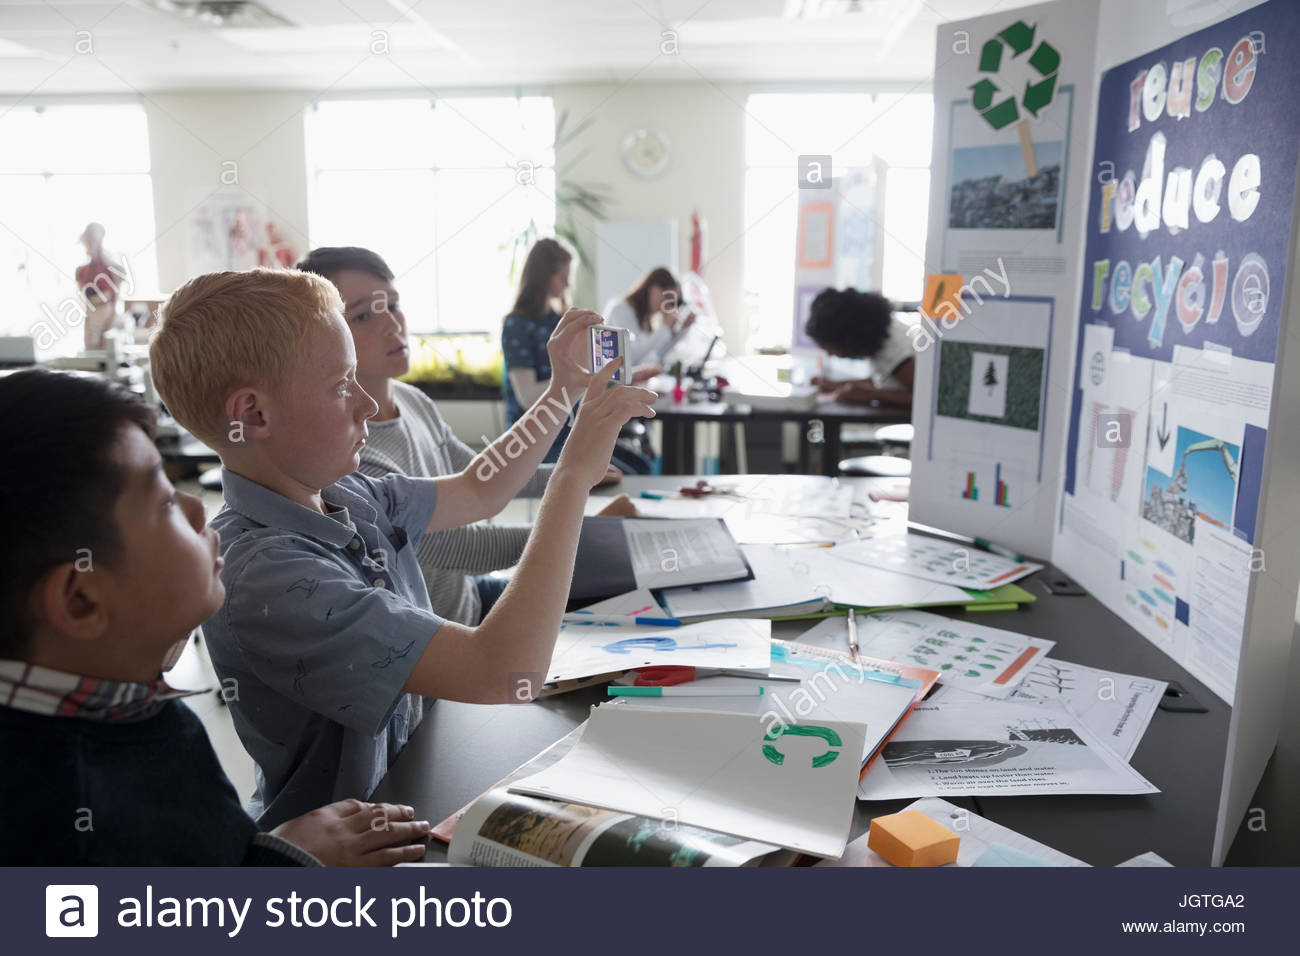 boy middle school student photographing science project poster with